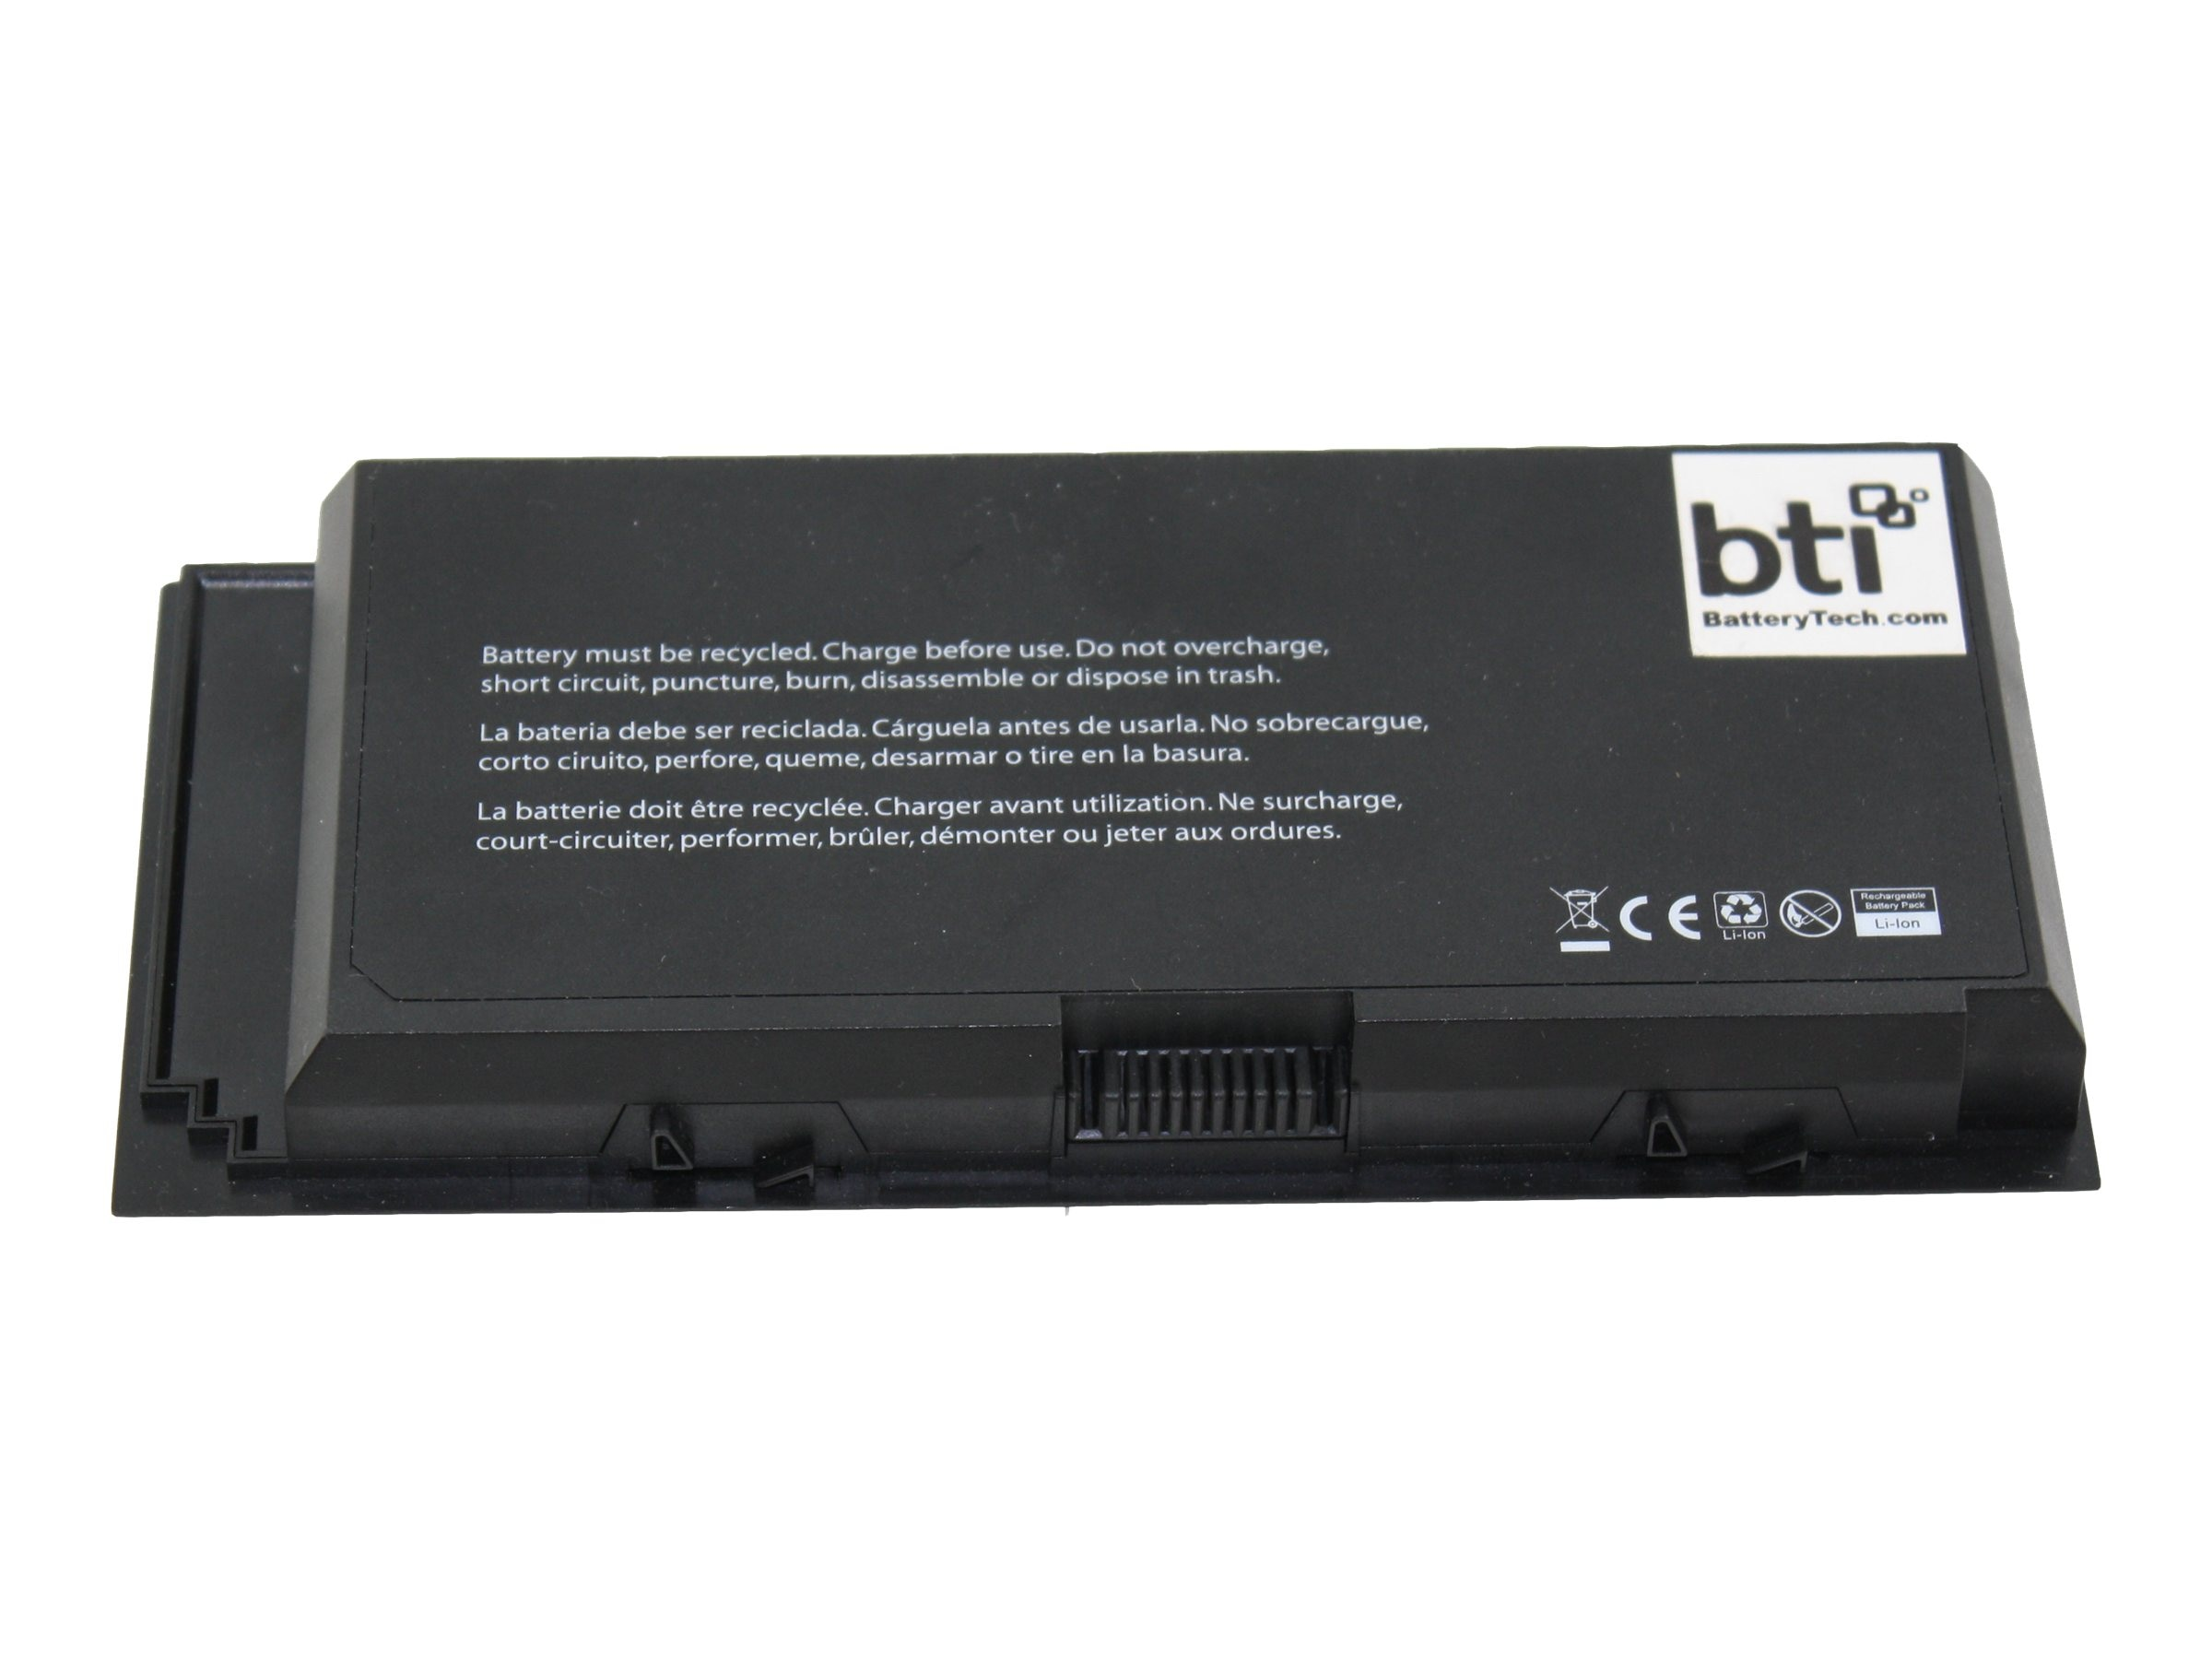 BTI 6-Cell Battery for Dell Precision M4600 312-1177 312-1178 0RTKDH 3DJH7